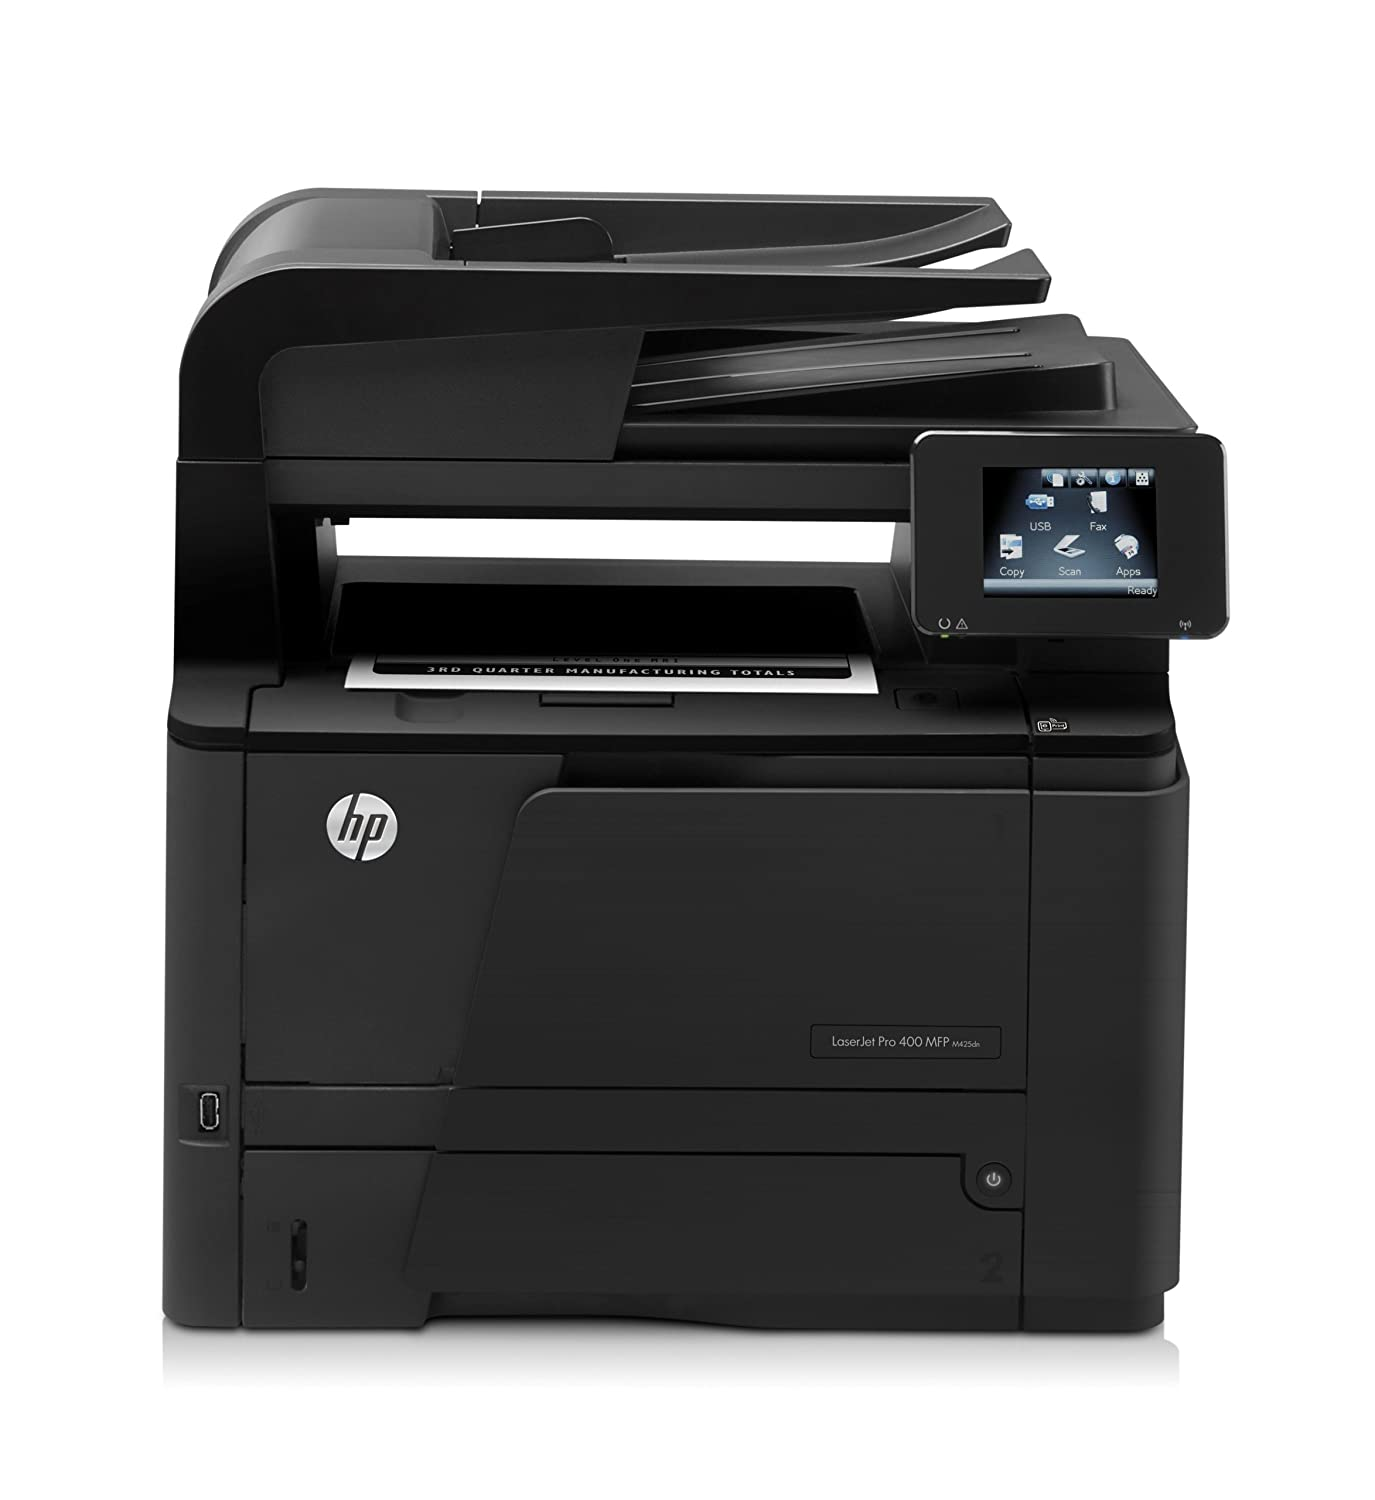 Color printing austin - Amazon Com Hp Laserjet Pro M425dn All In One Monochrome Printer Discontinued By Manufacturer Electronics